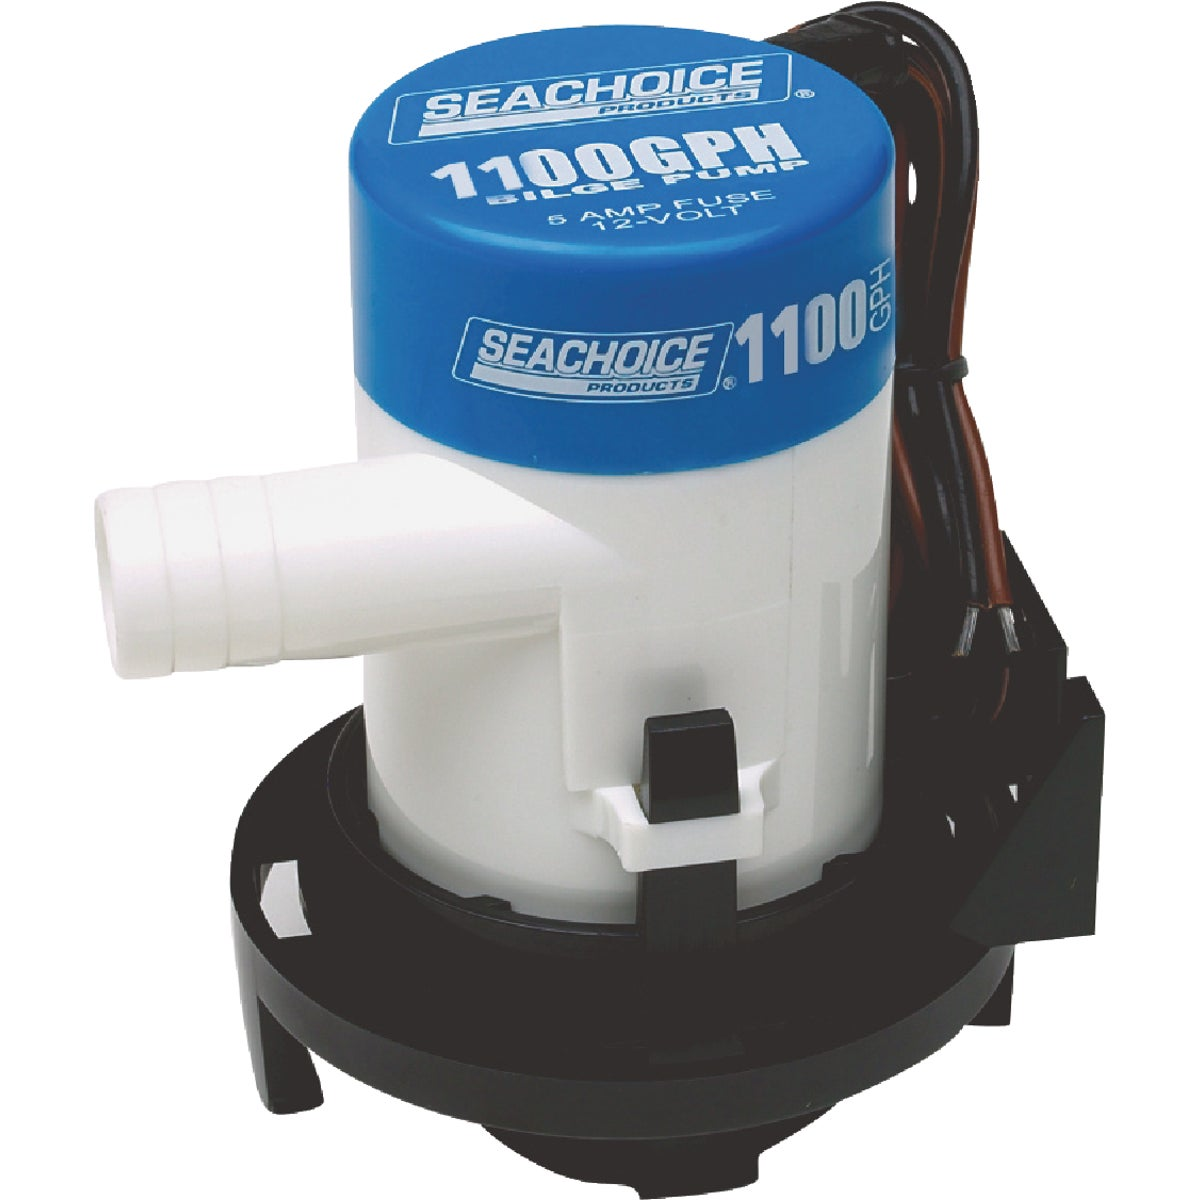 1000GPH BILGE PUMP - 19231 by Seachoice Prod